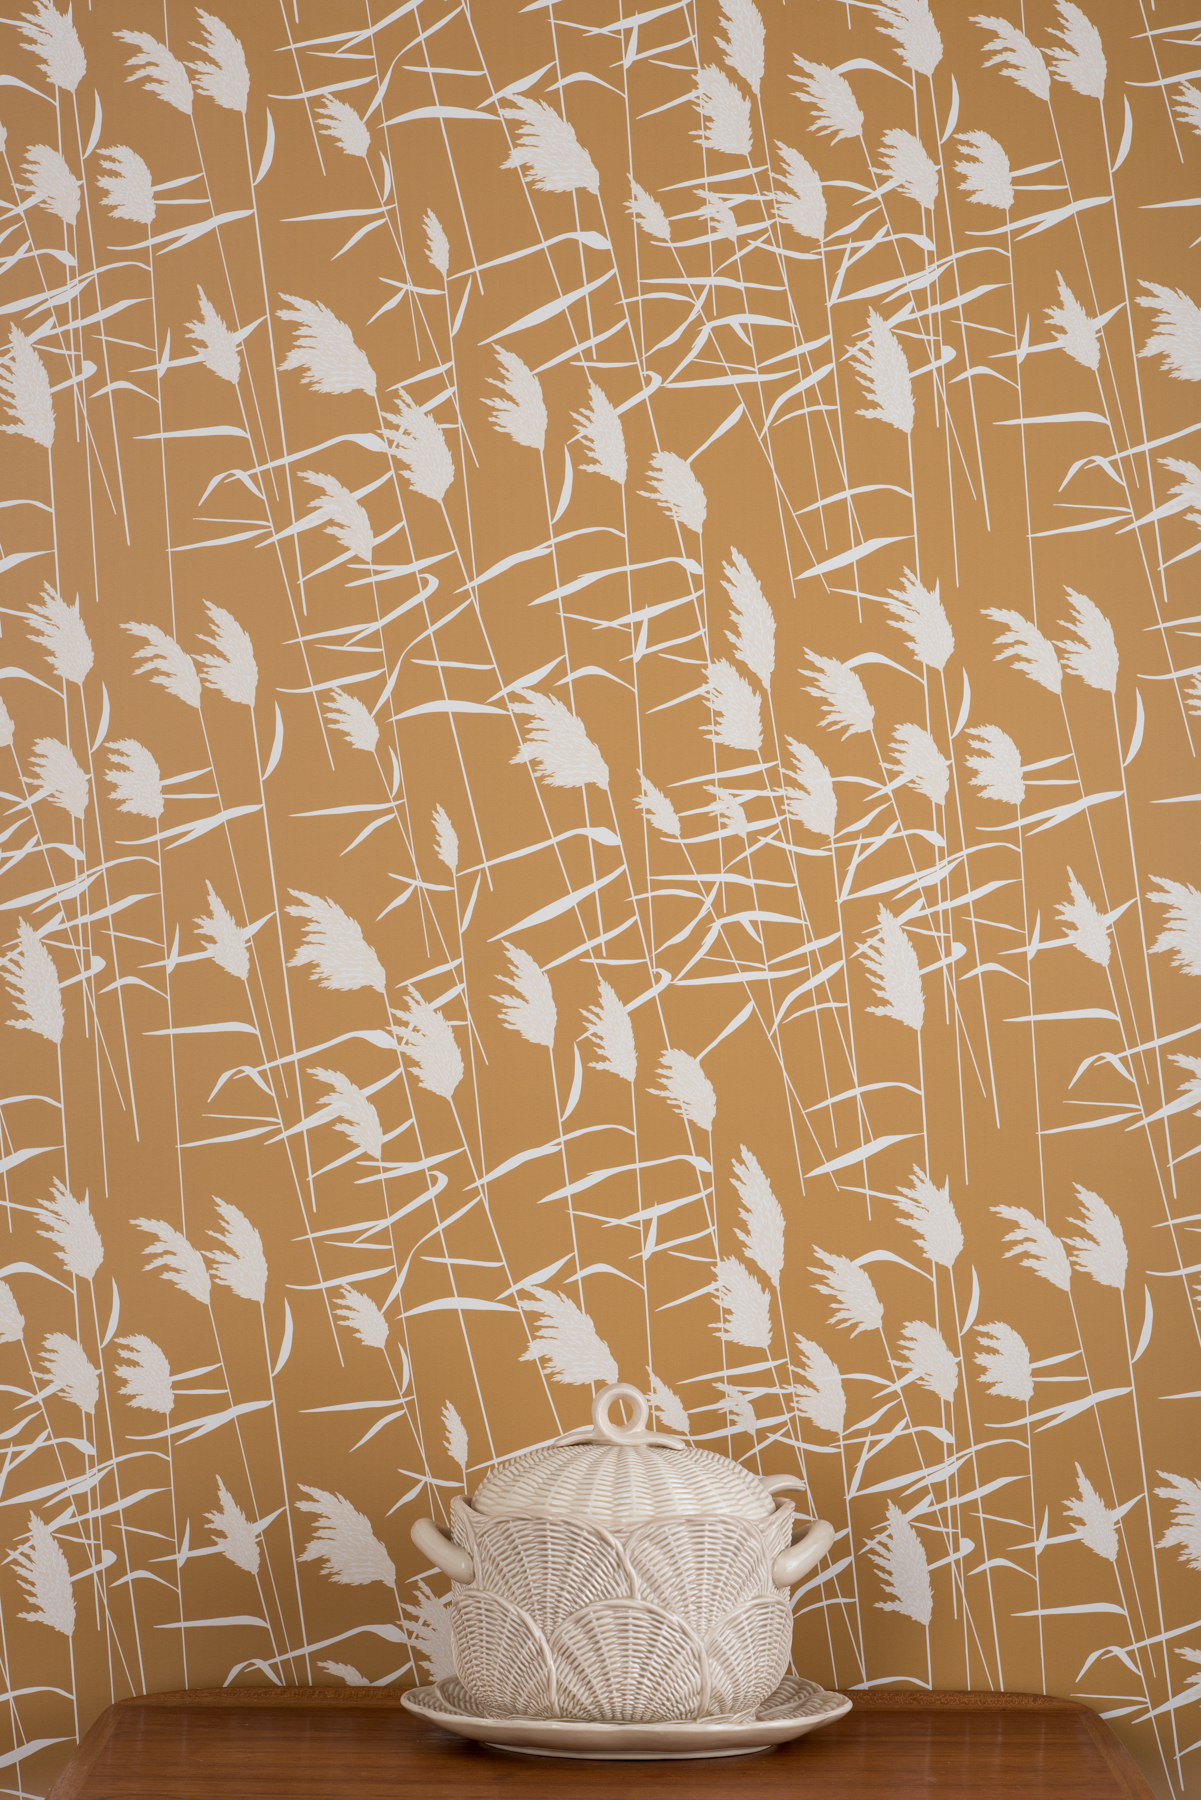 Kate Golding Grasses (Dusk) wallpaper // Modern wallcoverings and interior decor.